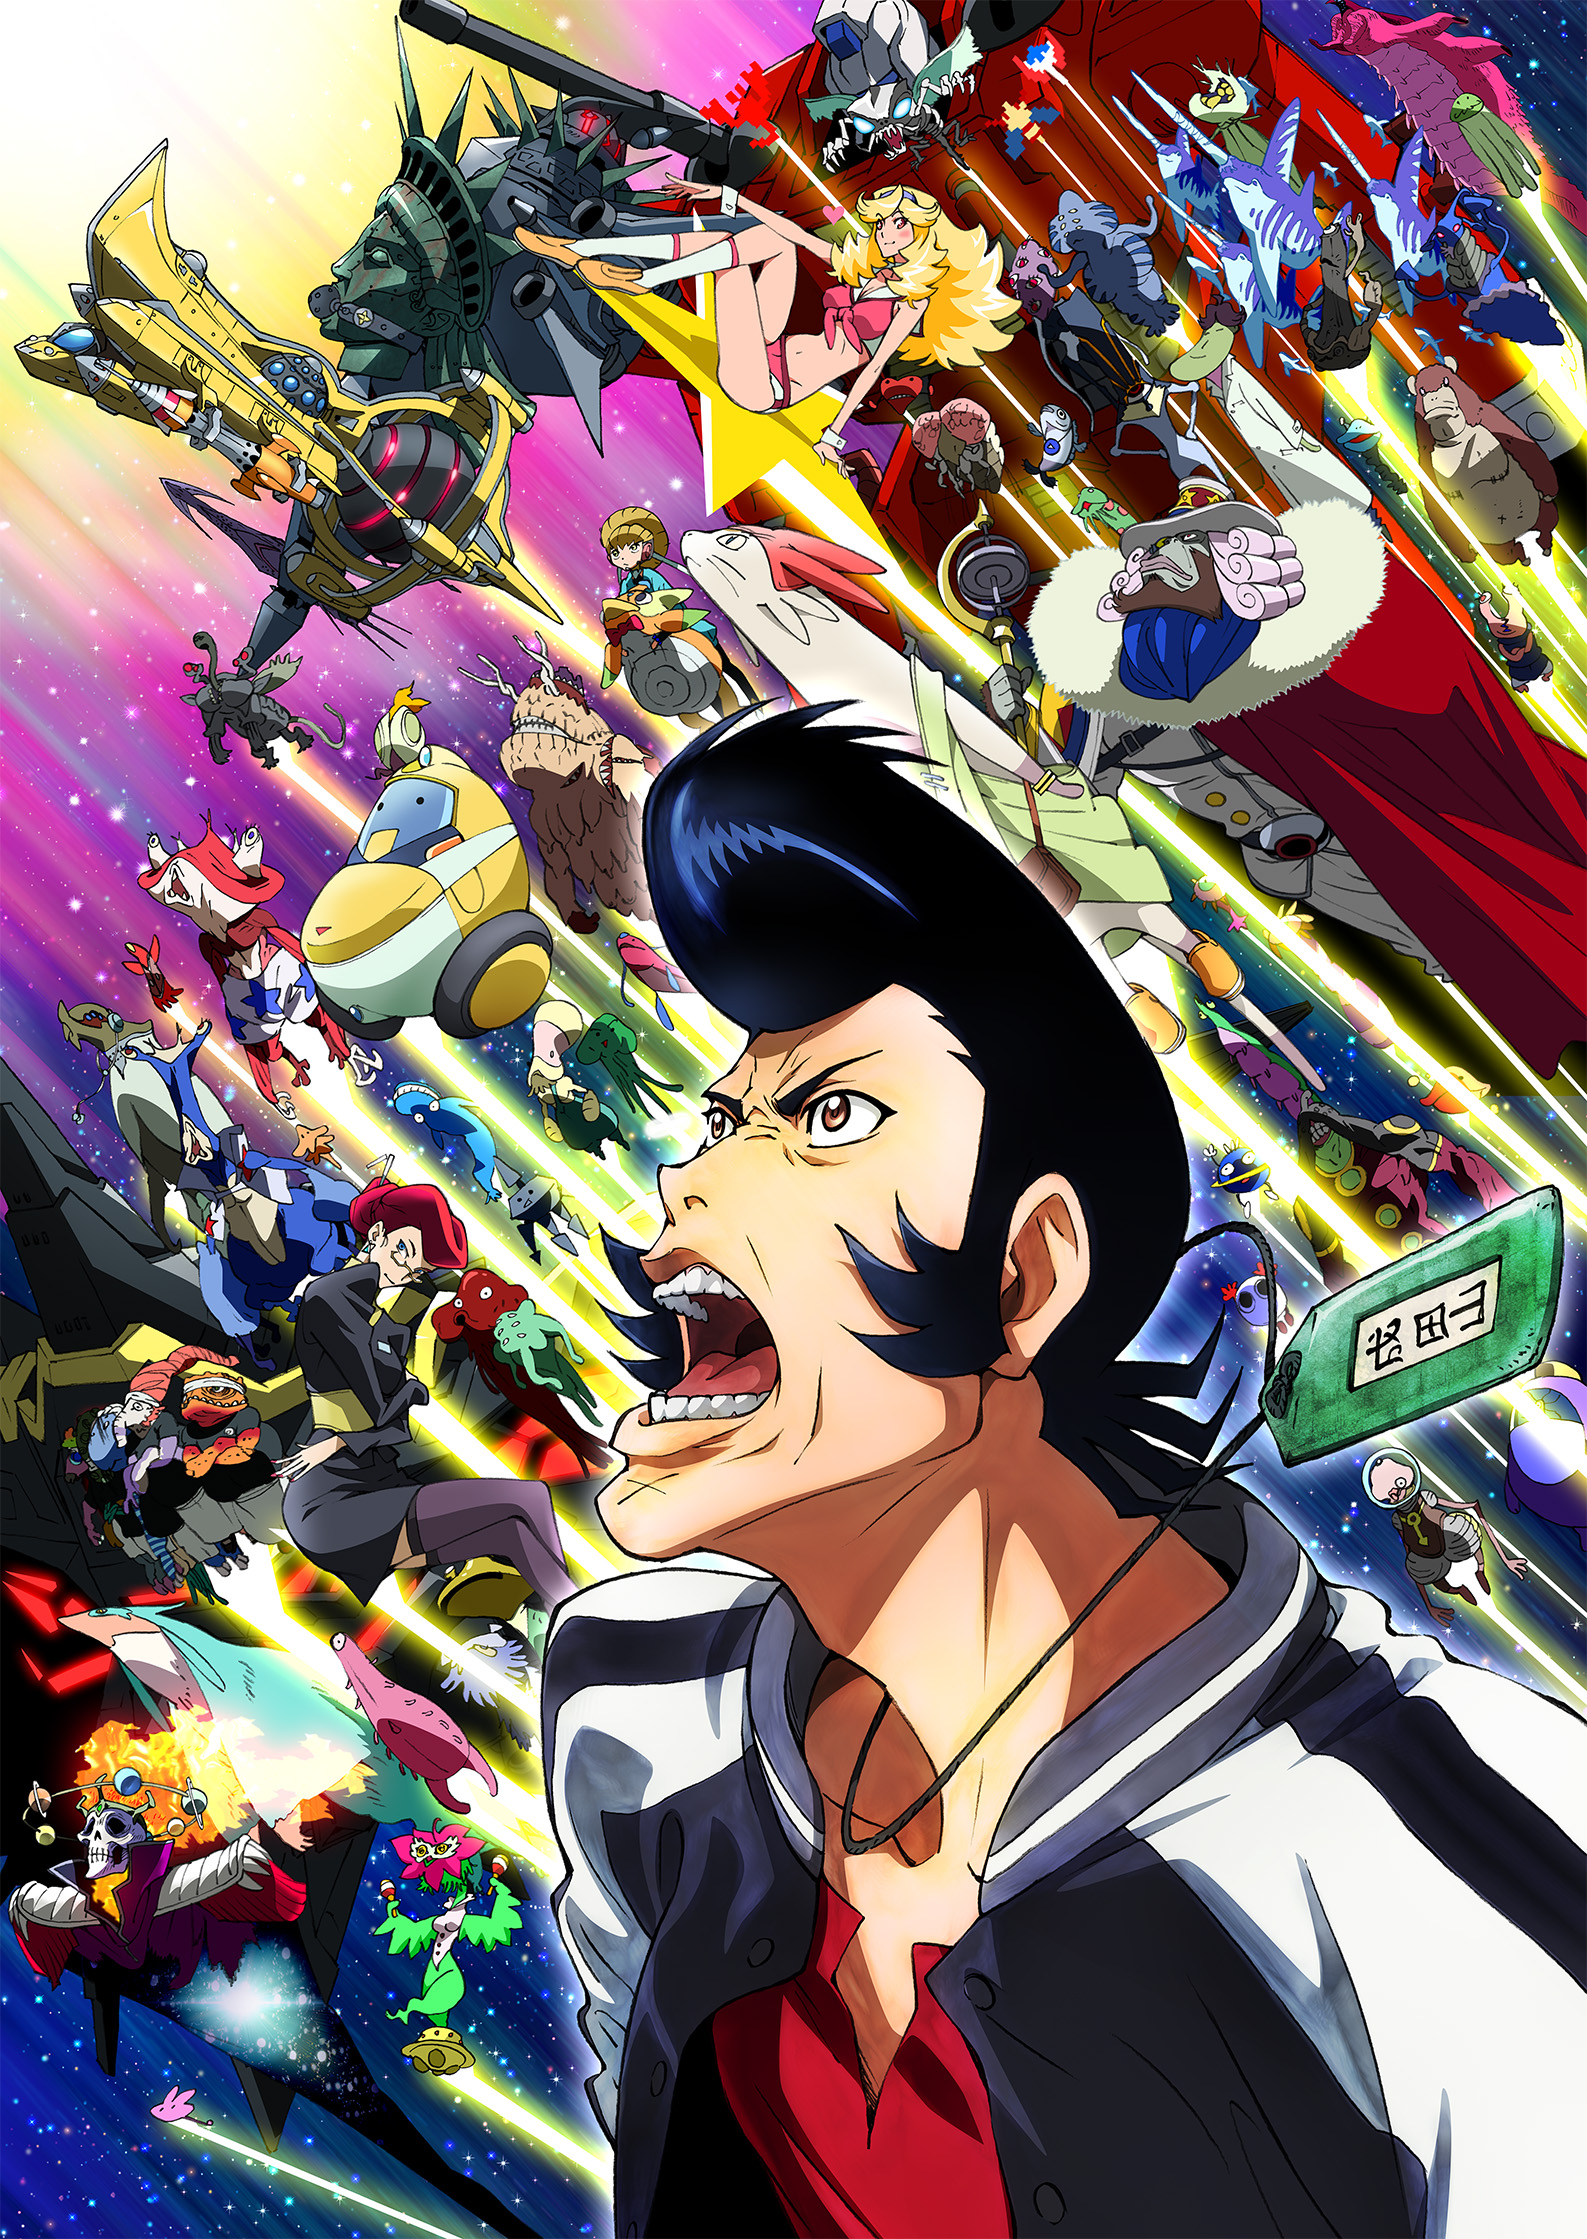 KAZUAKI NAGATA Hair Tomorrow Space Dandy Is Among A New Wave Of Hot Japanese Anime